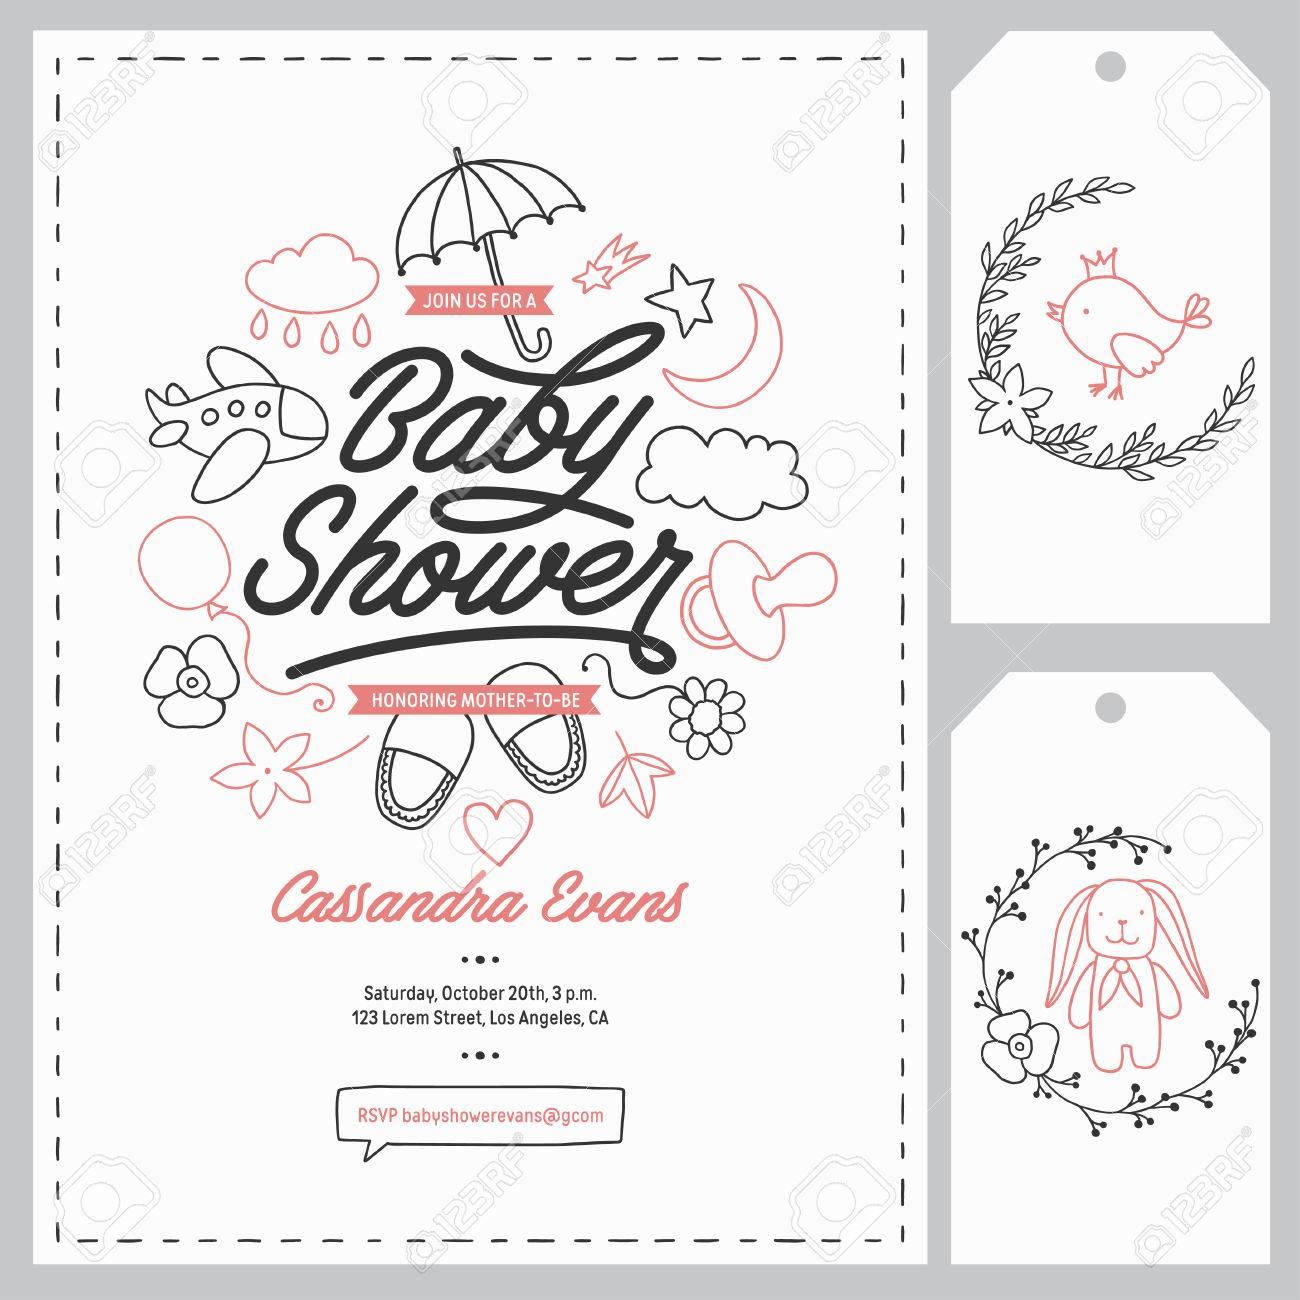 Baby shower invitation templates set floral design elements baby shower invitation templates set floral design elements for decoration baby shower holiday greeting filmwisefo Choice Image